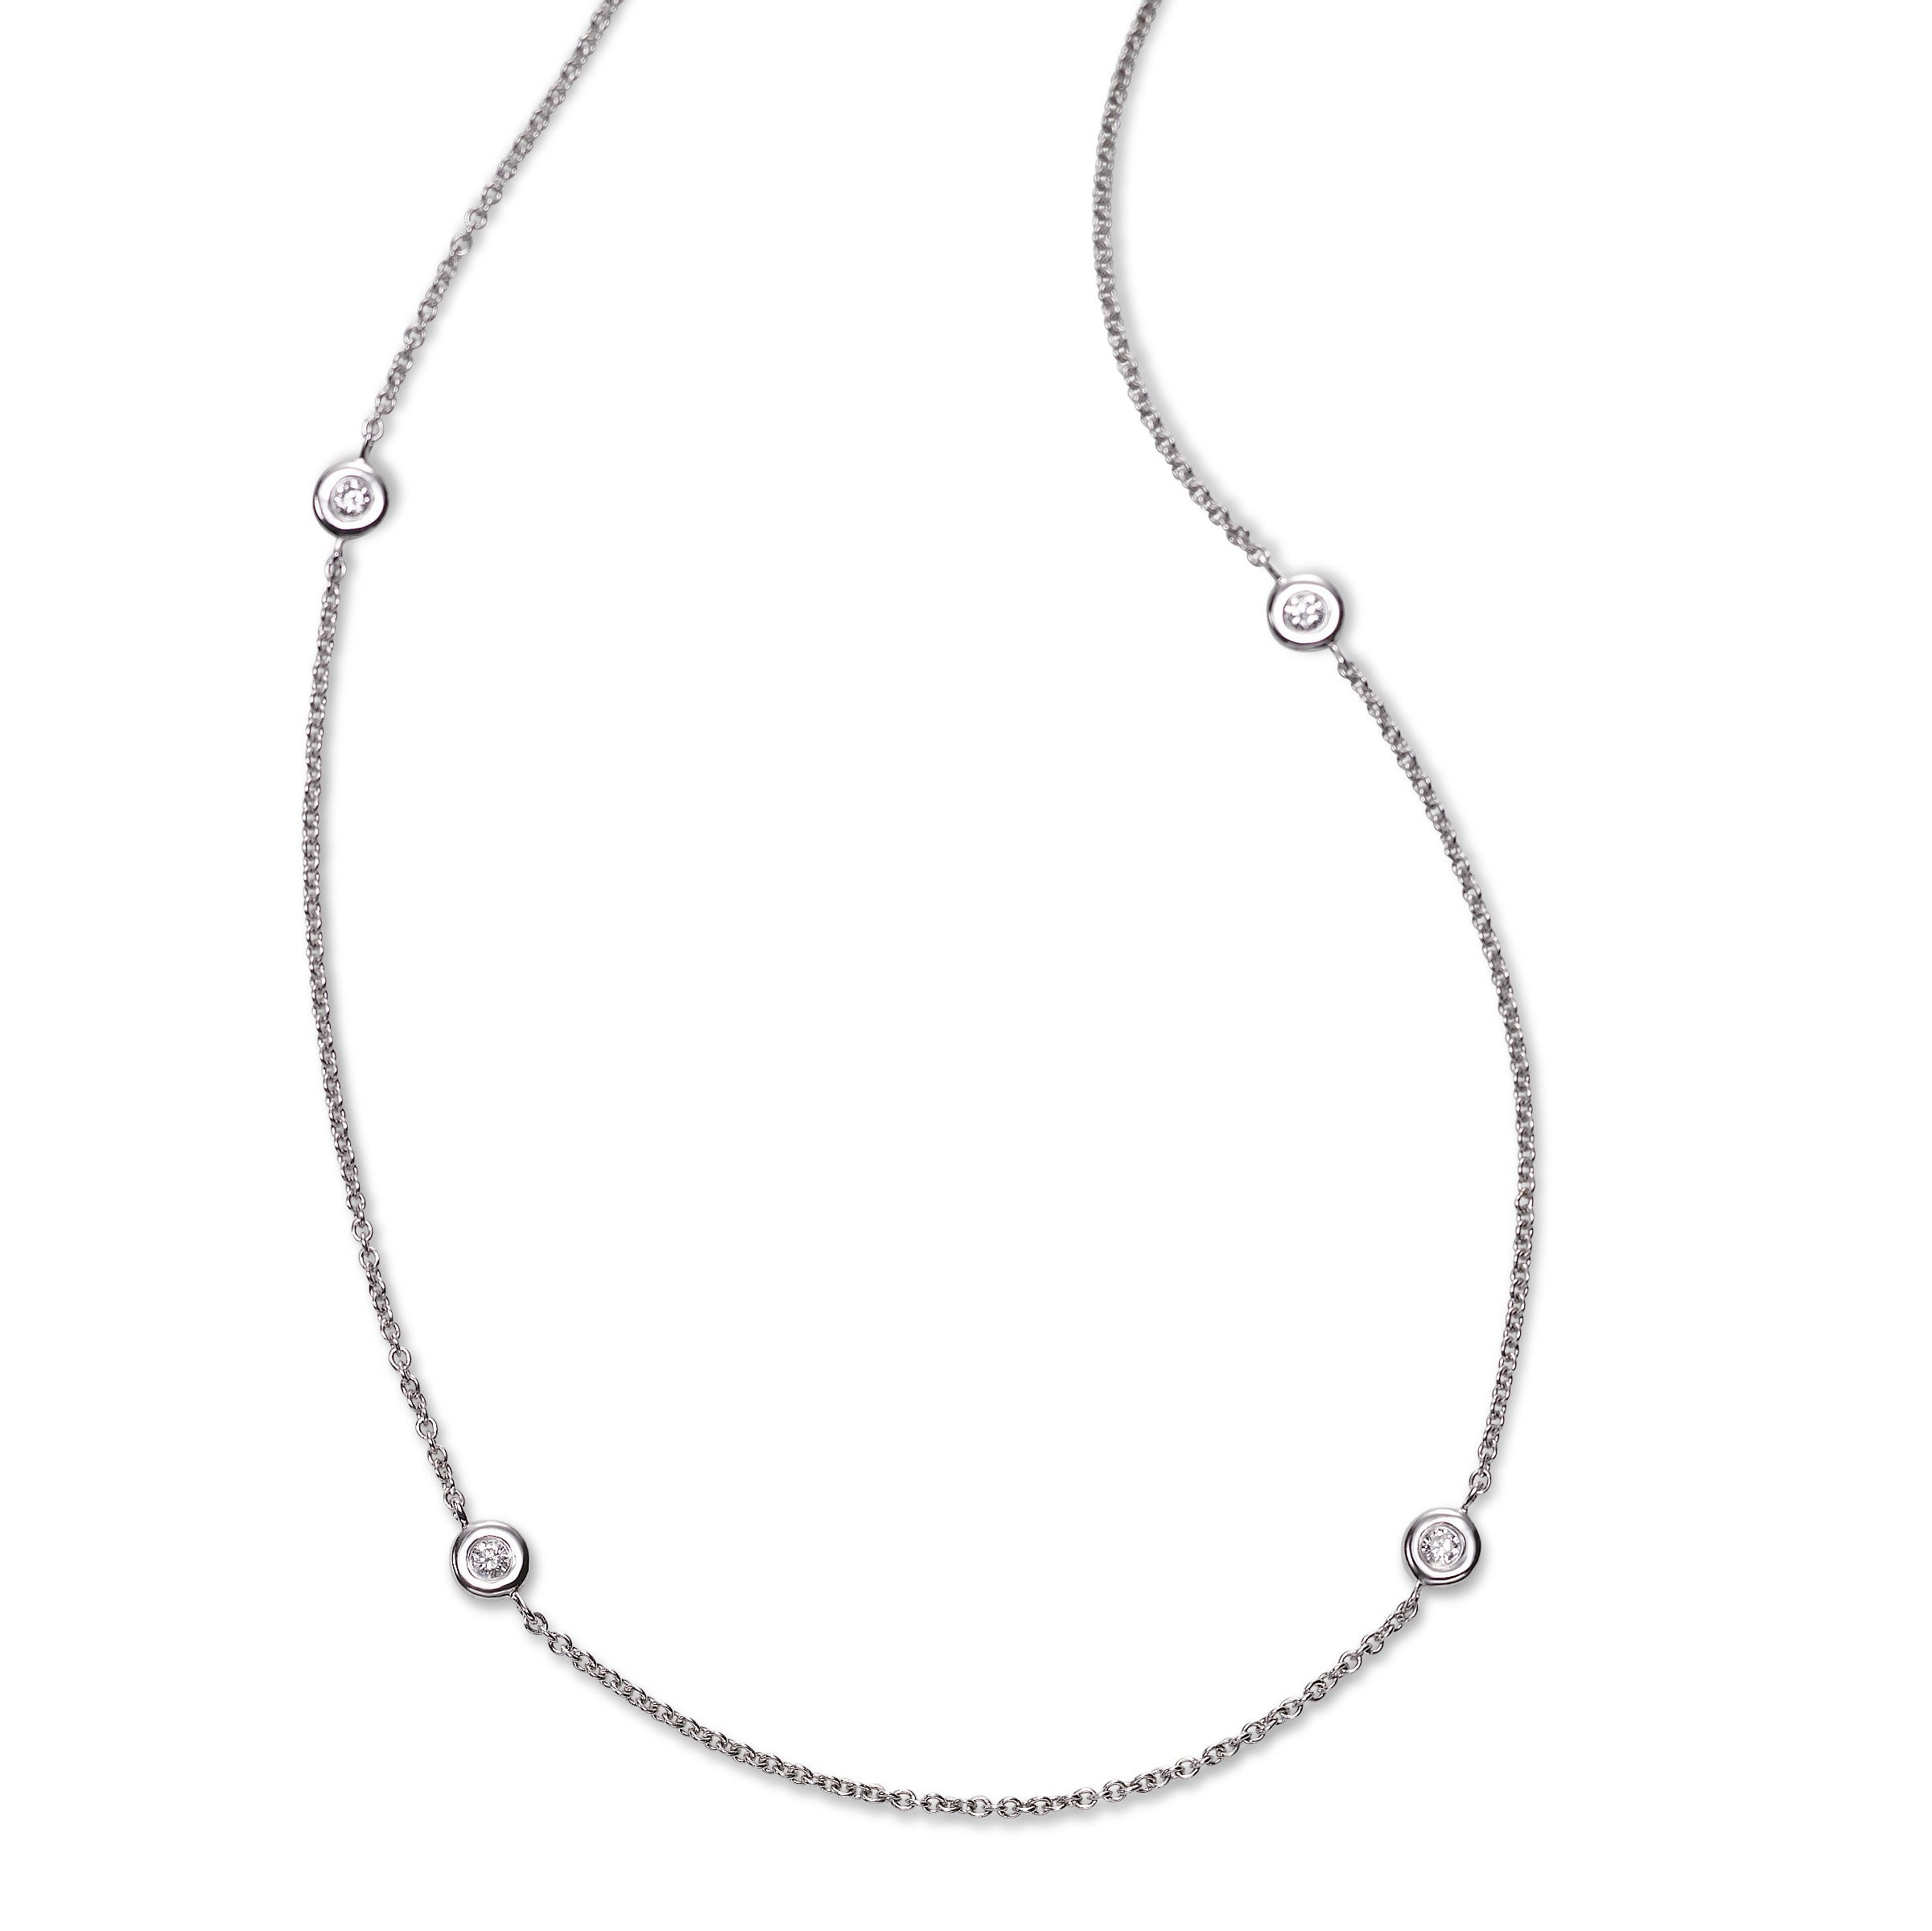 Bezel Diamond Stations Necklace, 18 Inches, 1.50 Carats, 14K White Gold